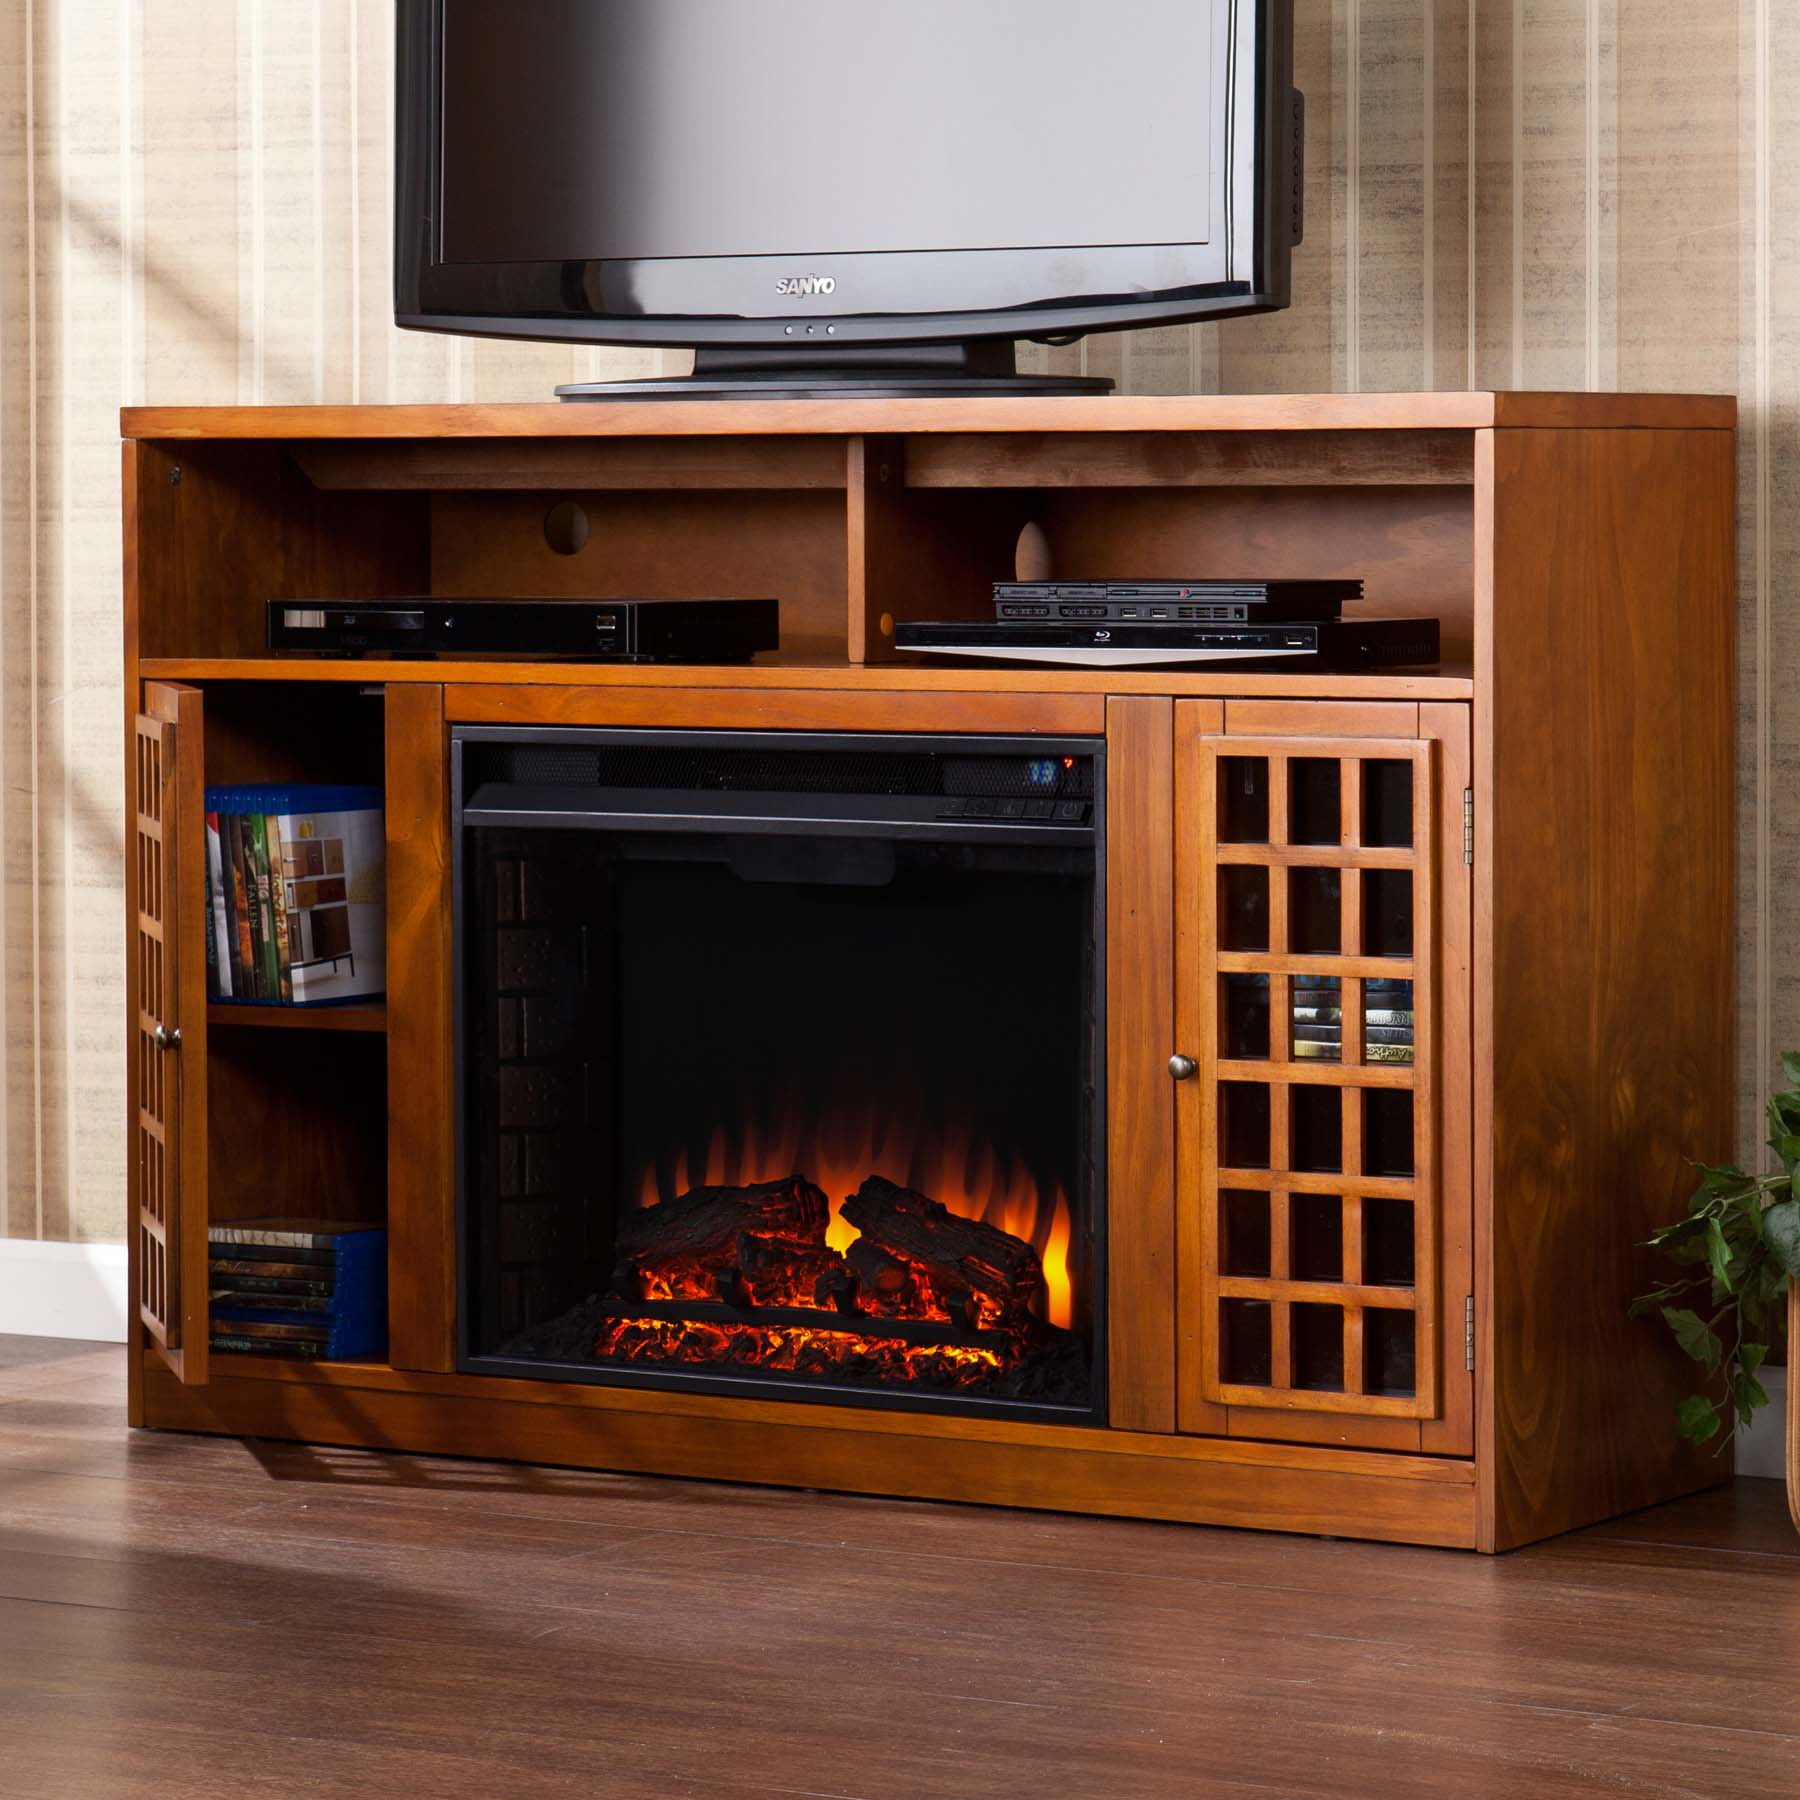 Tips for Buying an Electric Fireplace | PortableFireplace ...